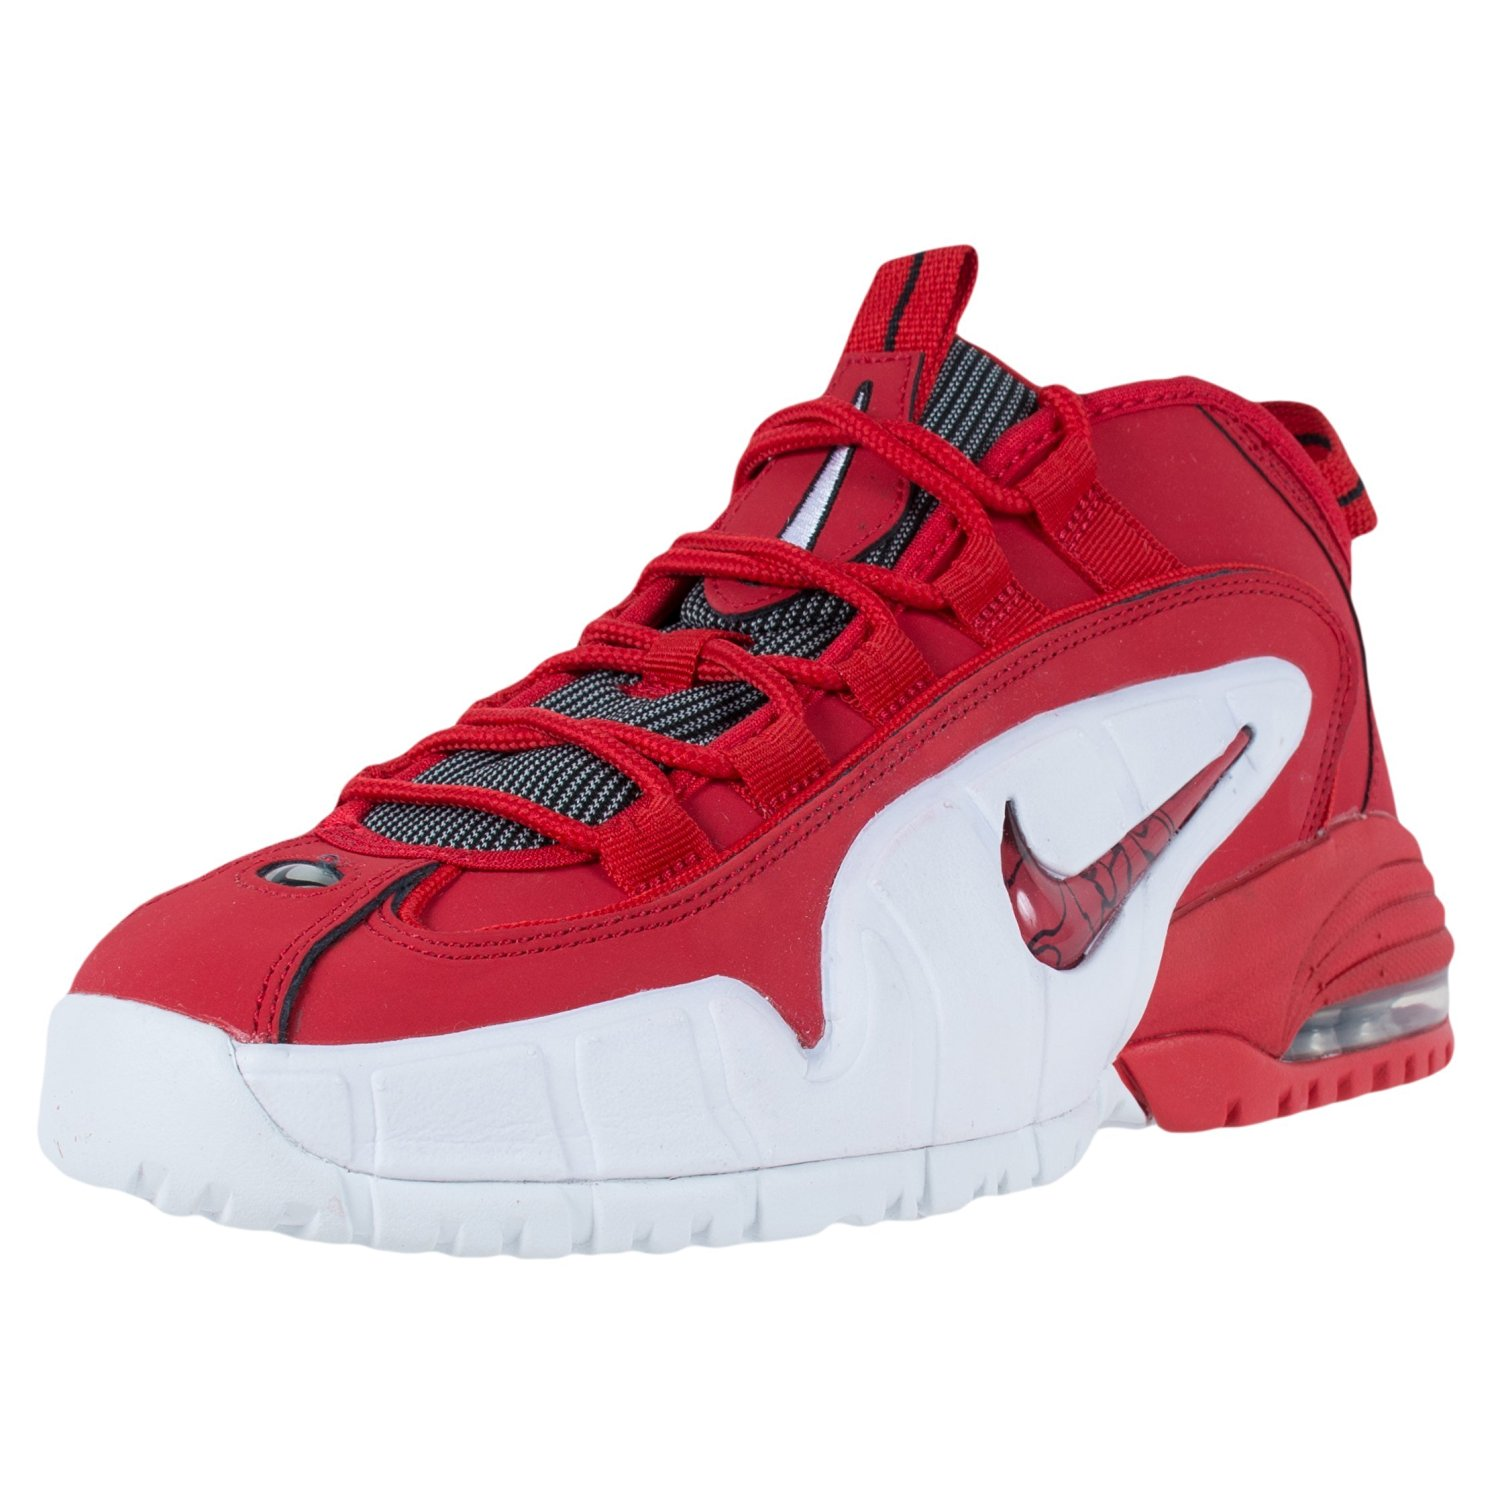 the latest 45531 2a65f Get Quotations · Nike Air Max Penny 1 (GS) University Red - White - Black  GS 4.5